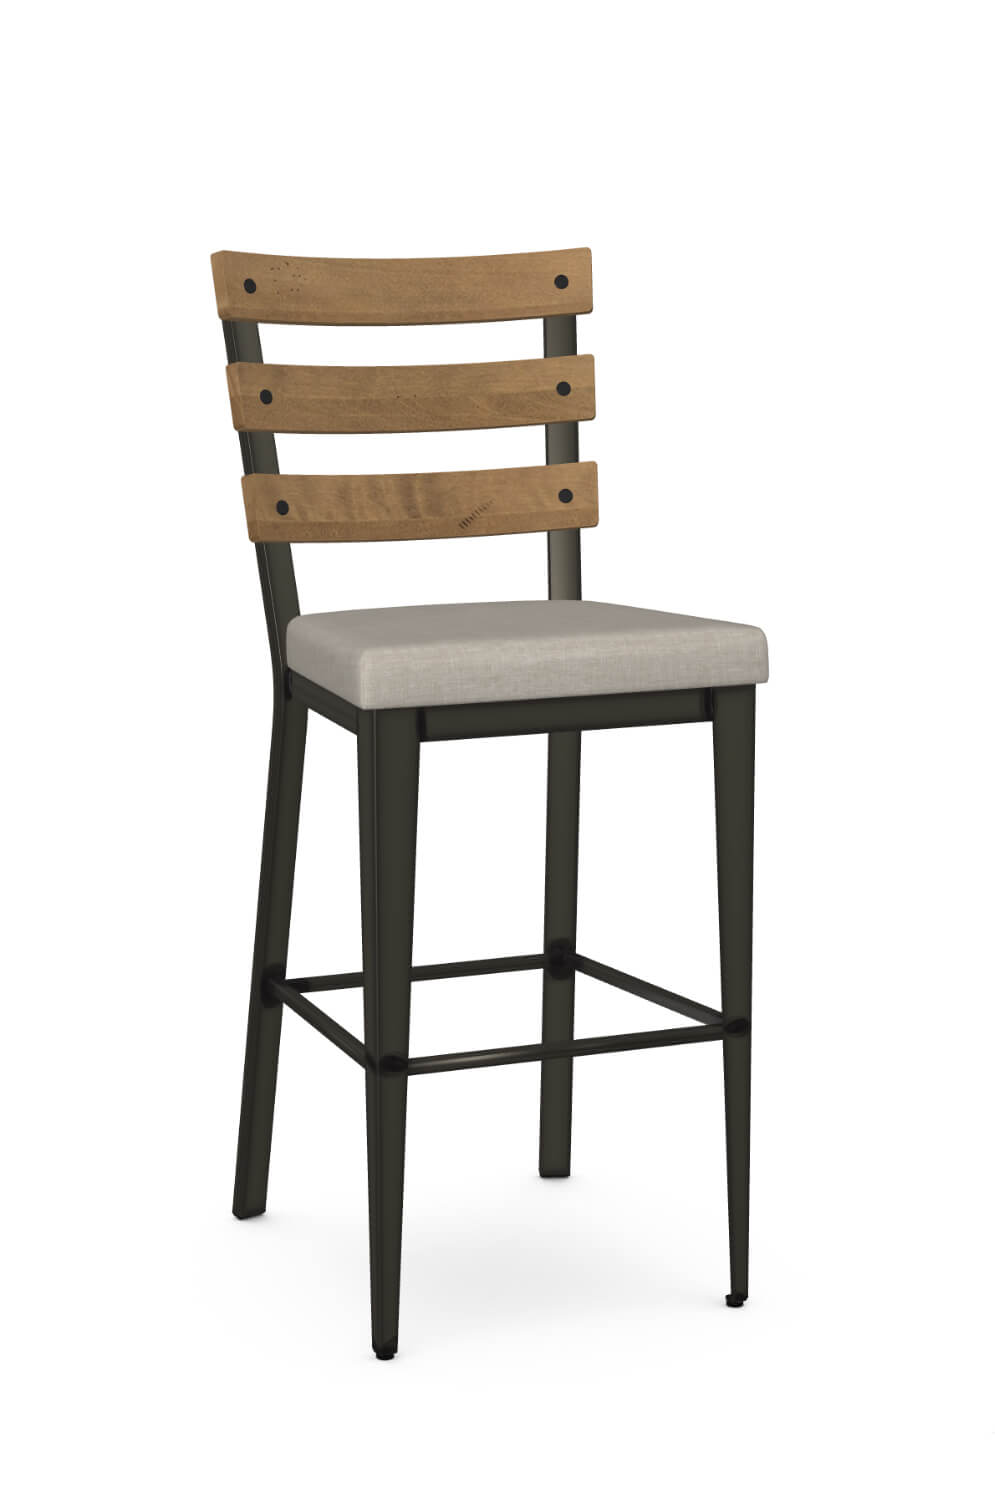 Image of: Amisco Dexter Stool For Country Industrial Kitchens Barstool Comforts